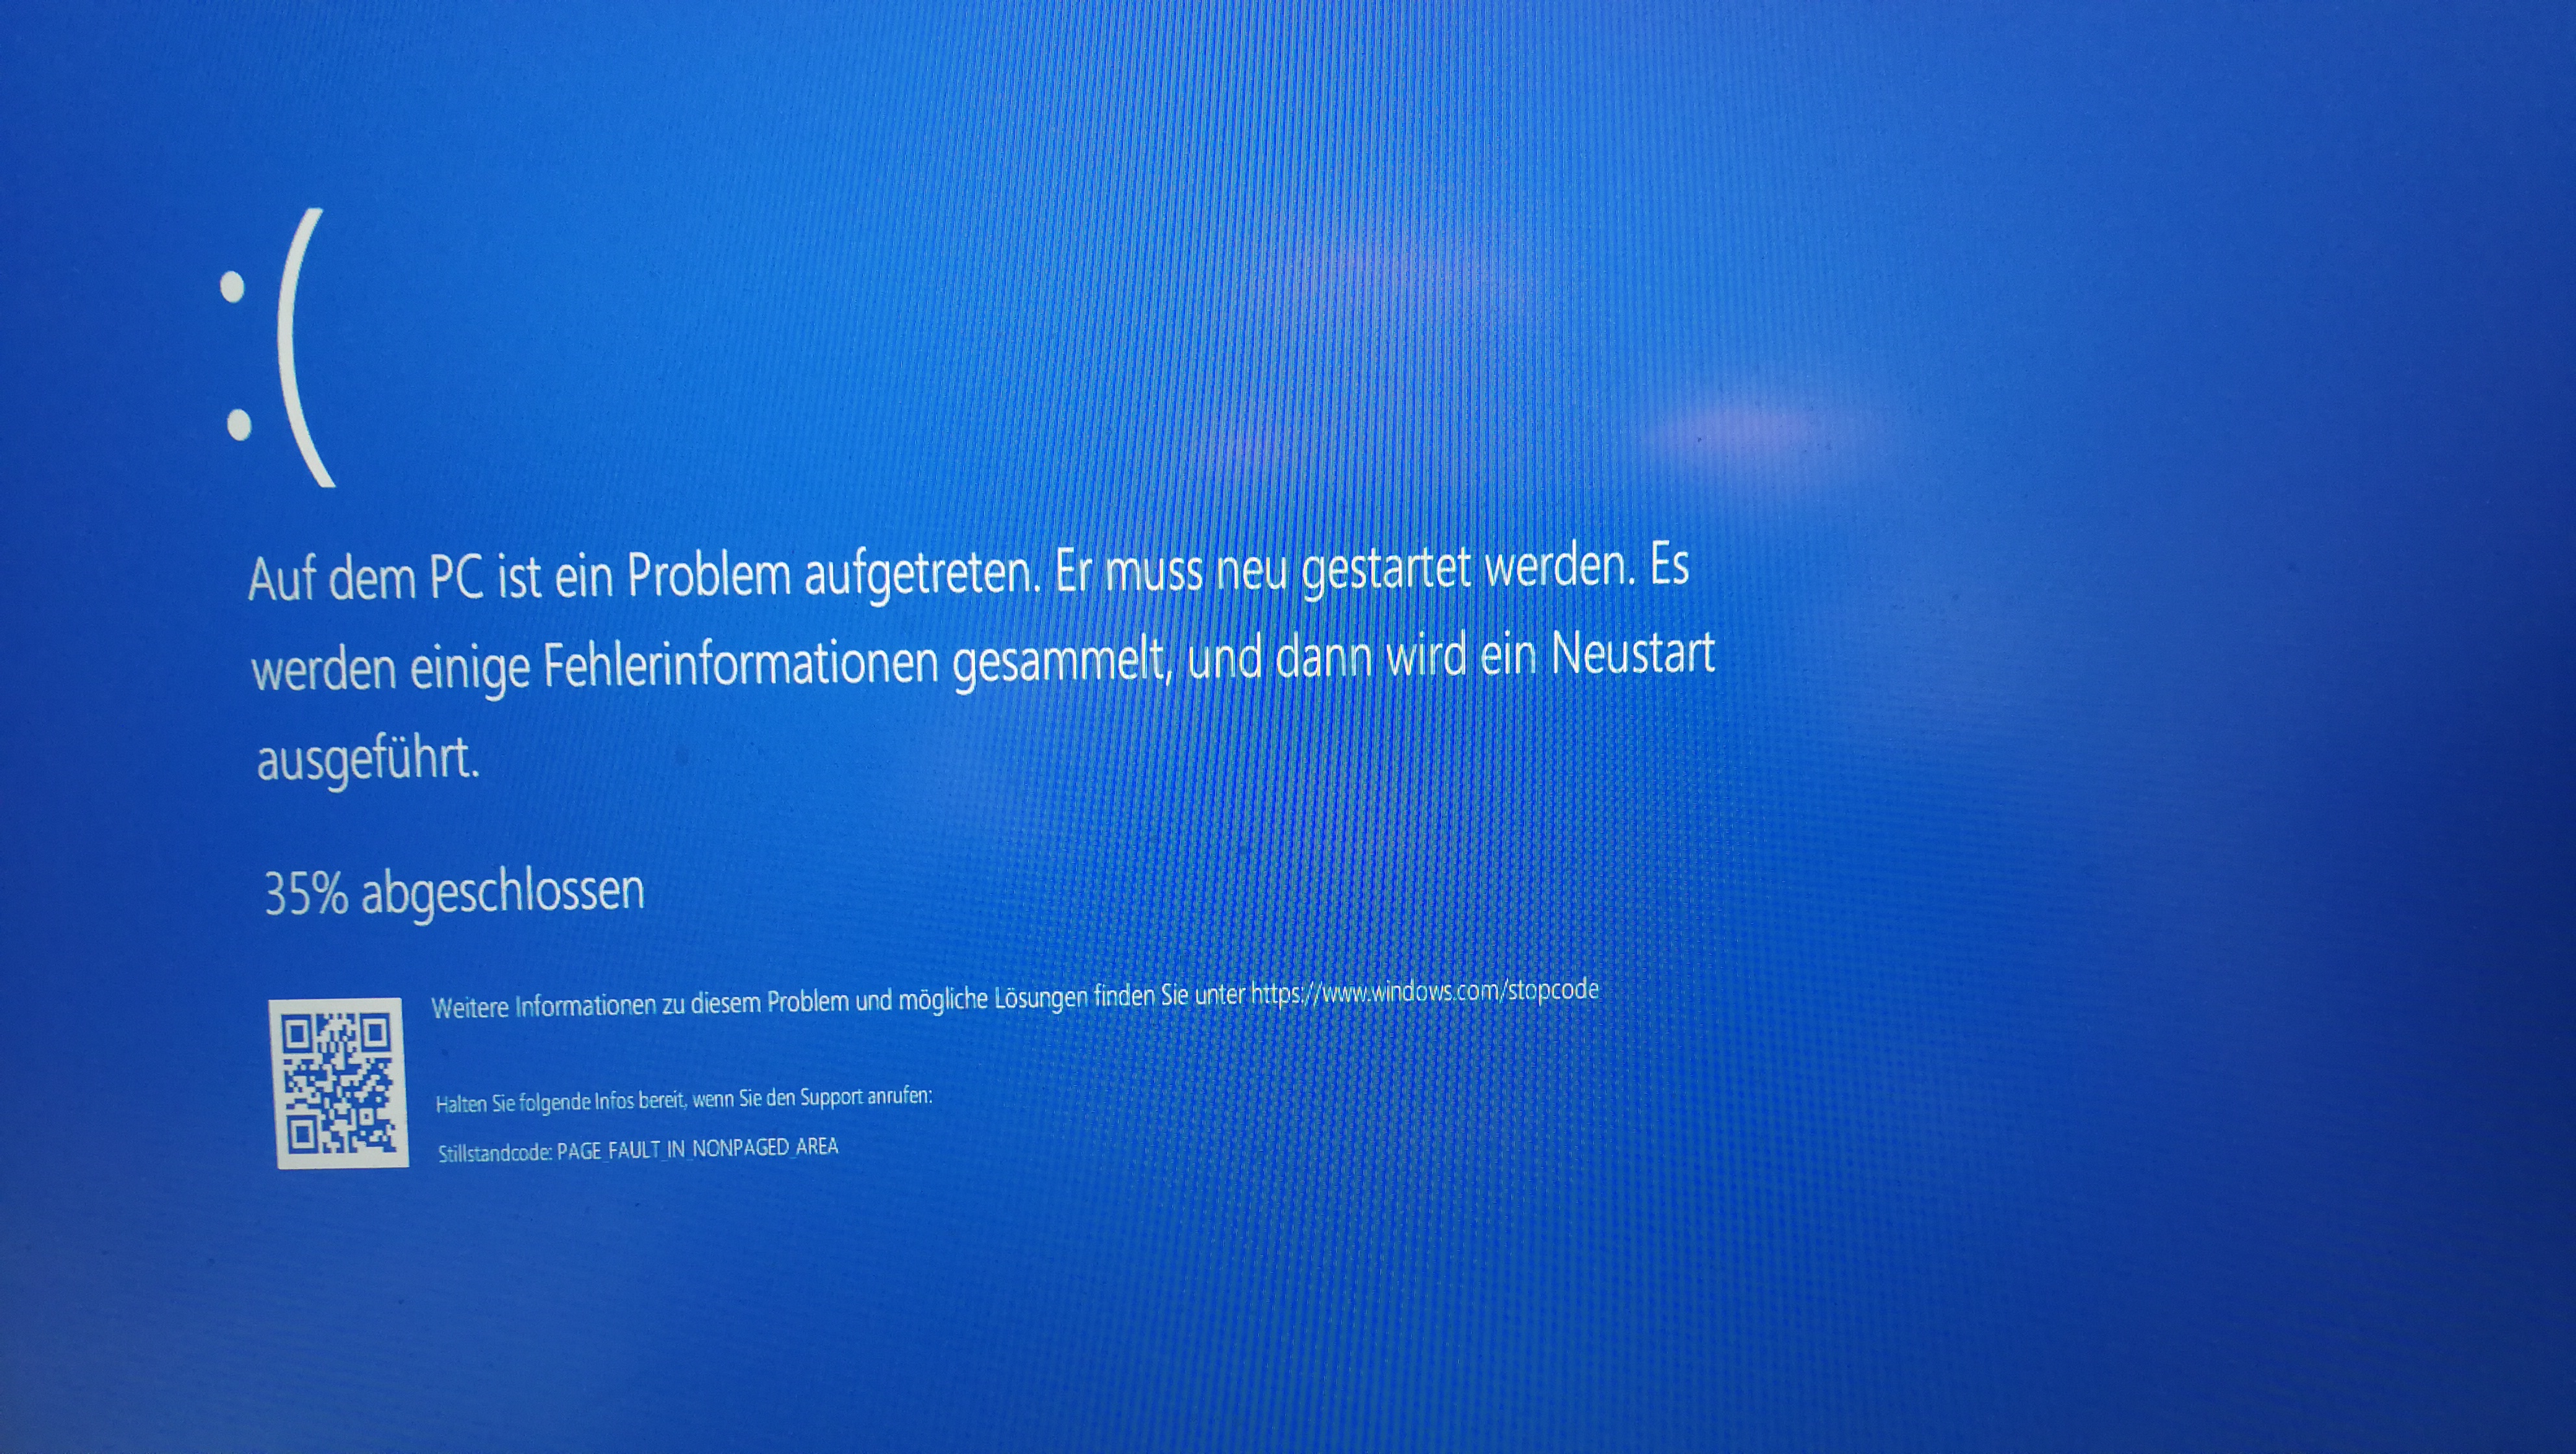 Bluescreen: PAGE_FAULT_IN_NONPAGED_AREA